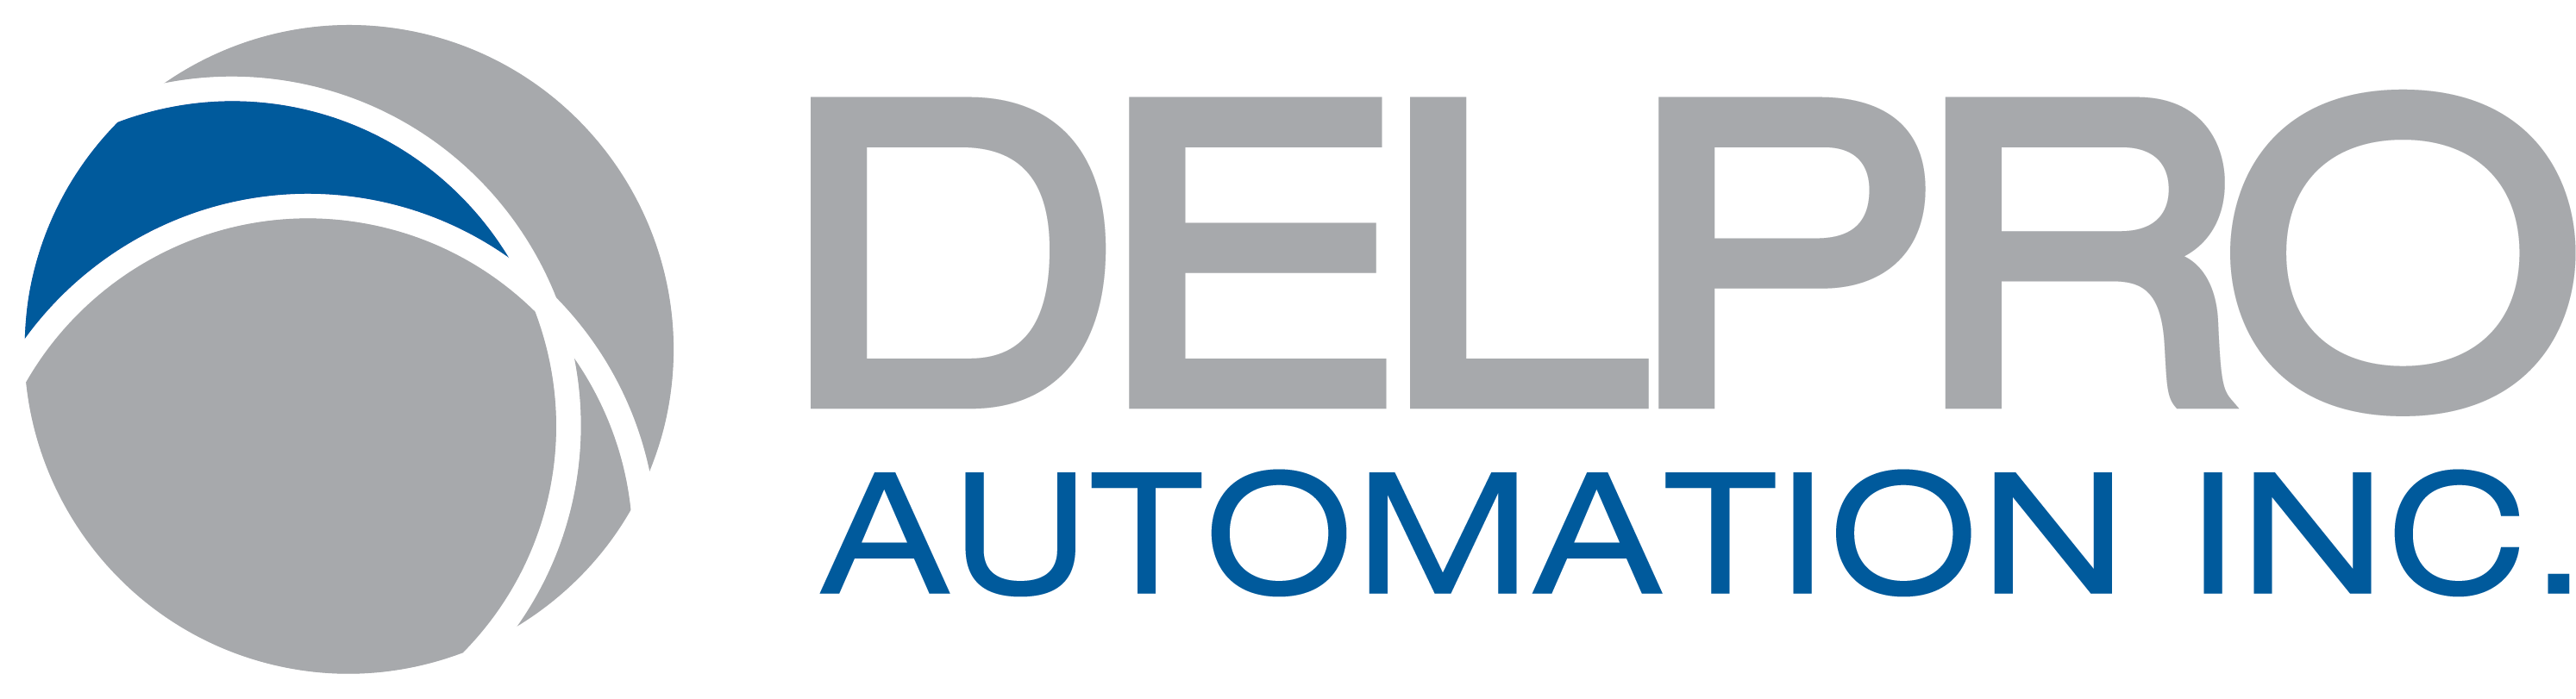 Delpro Automation